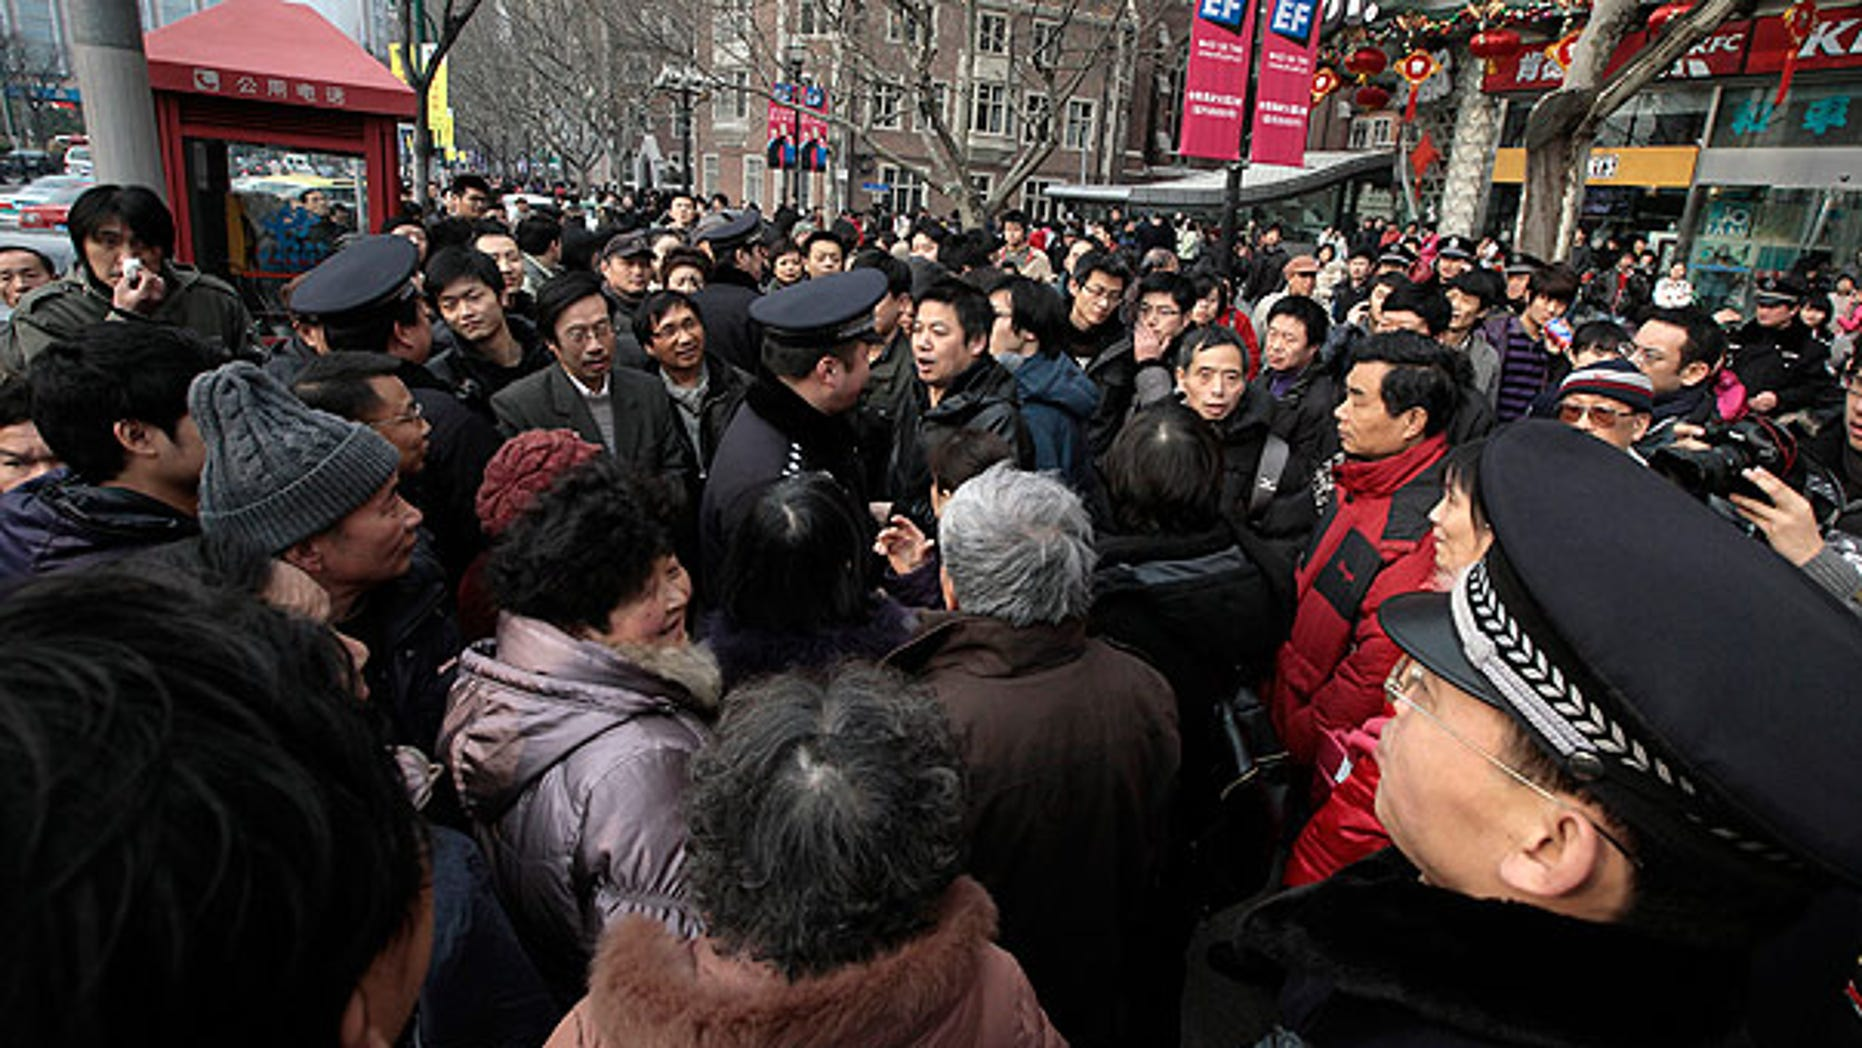 Feb. 20: Police officers urge people to leave as they gather in front of a cinema that was a planned protest site in Shanghai, China.